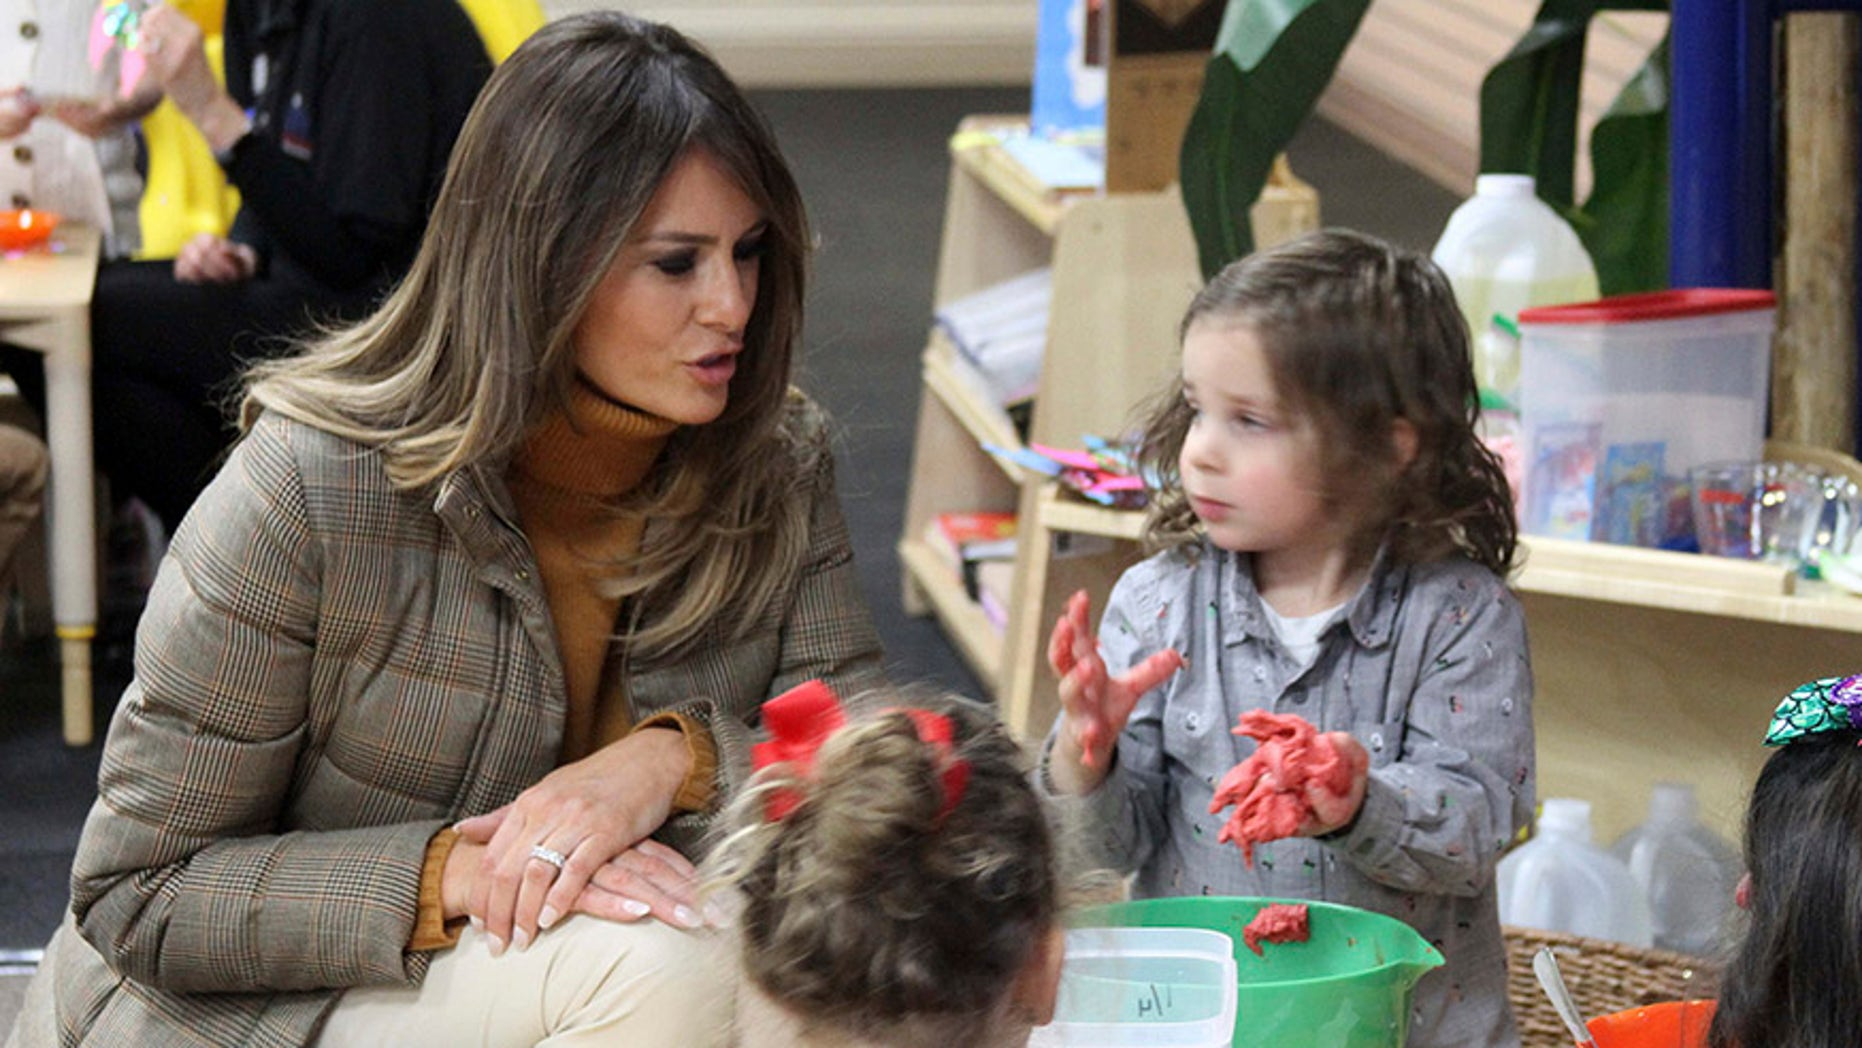 First Lady Melania Trump plays with children at Joint Base Elmendorf-Richardson, Alaska, on Nov. 10, 2017